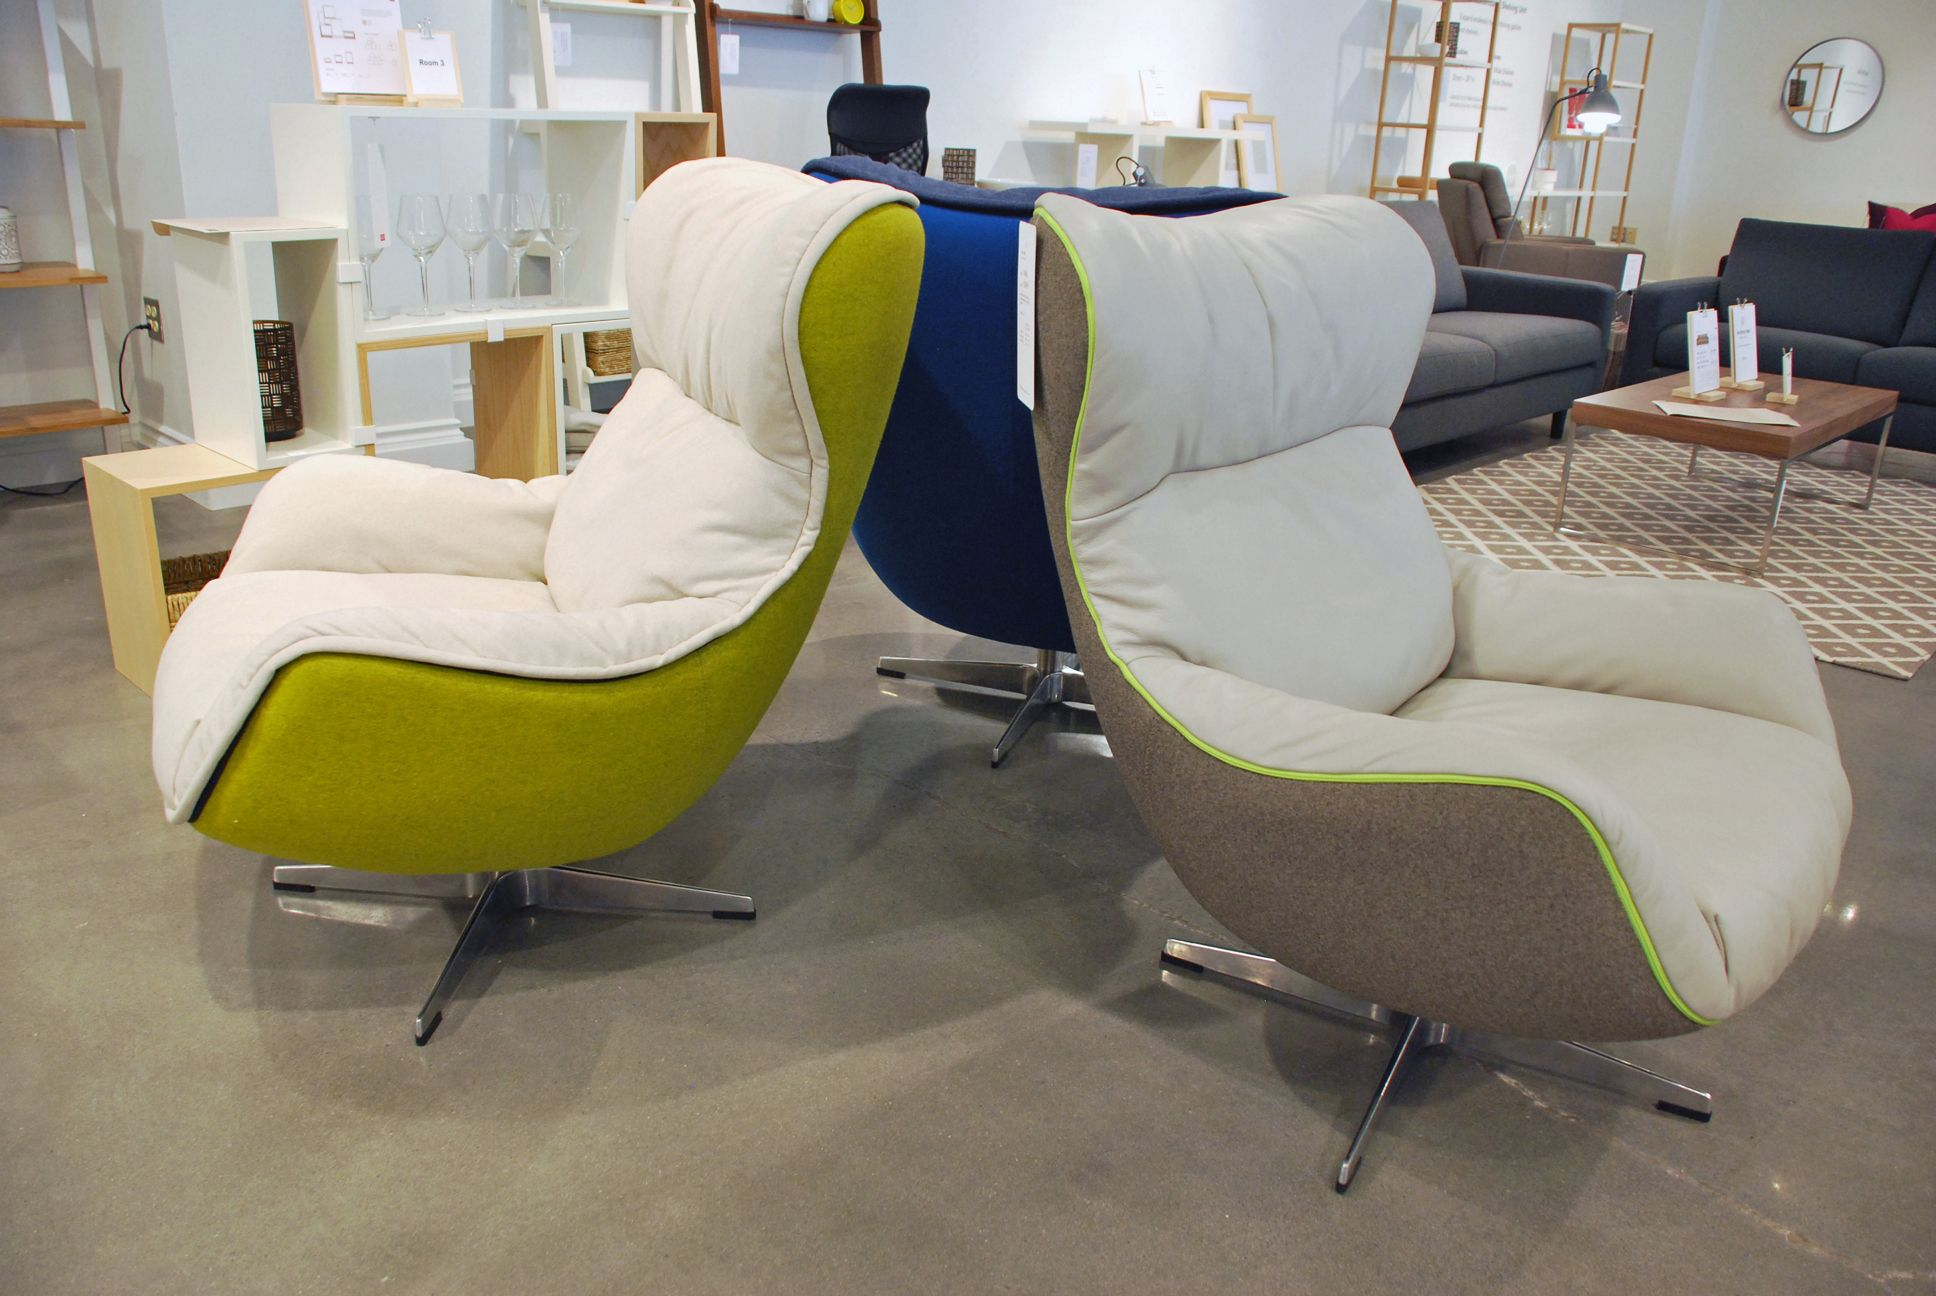 At the EQ3 showroom these Arie chairs come in any EQ3 fabric and now have fun welt options including zippered welt! Come to showroom 400 to sit in these ... & At the EQ3 showroom these Arie chairs come in any EQ3 fabric and ...